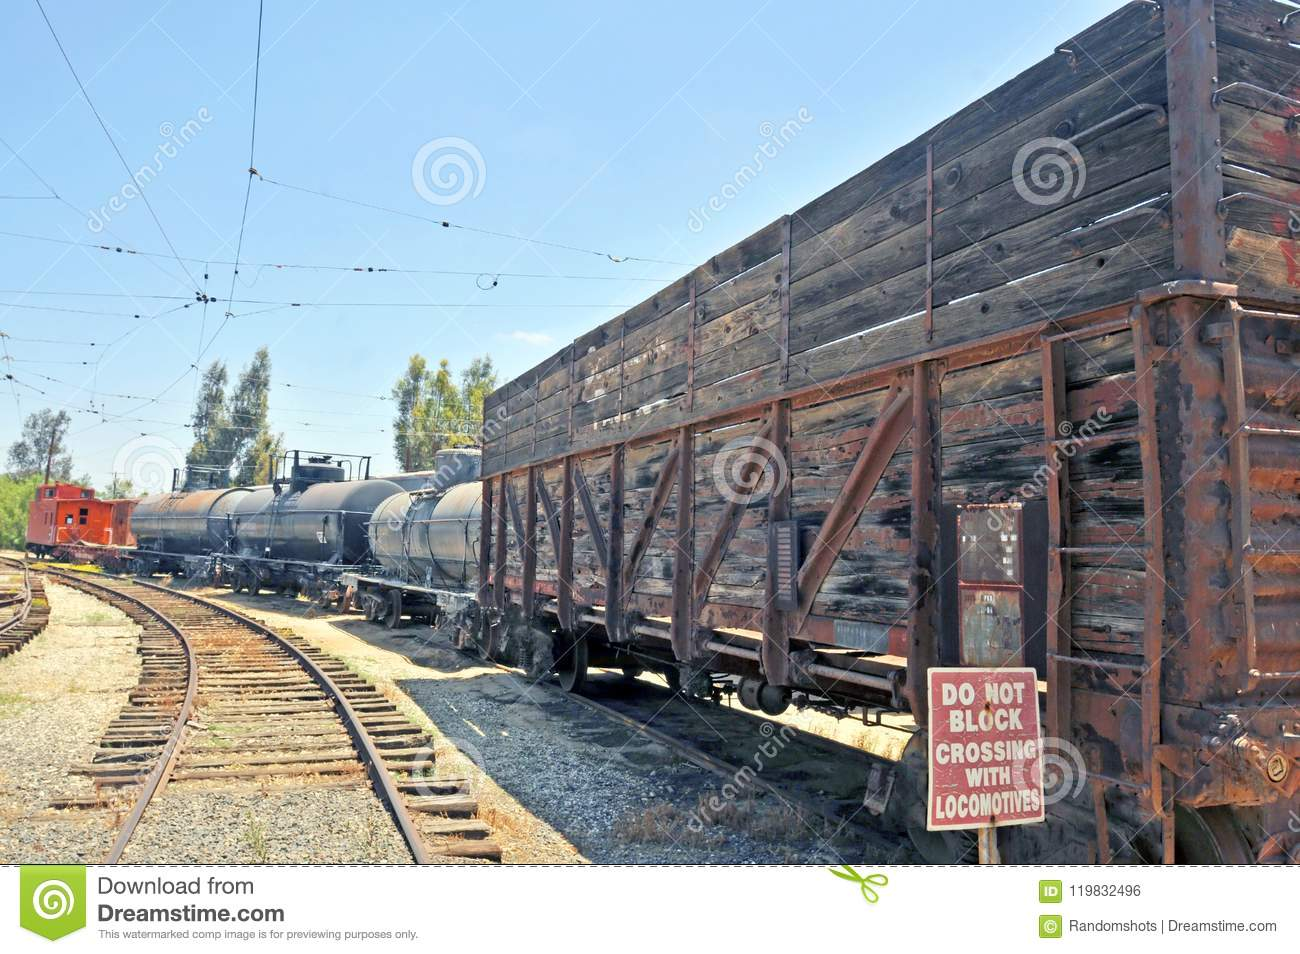 Vintage Caboose, Tanker Cars, & Cattle Car Stock Photo - Image of